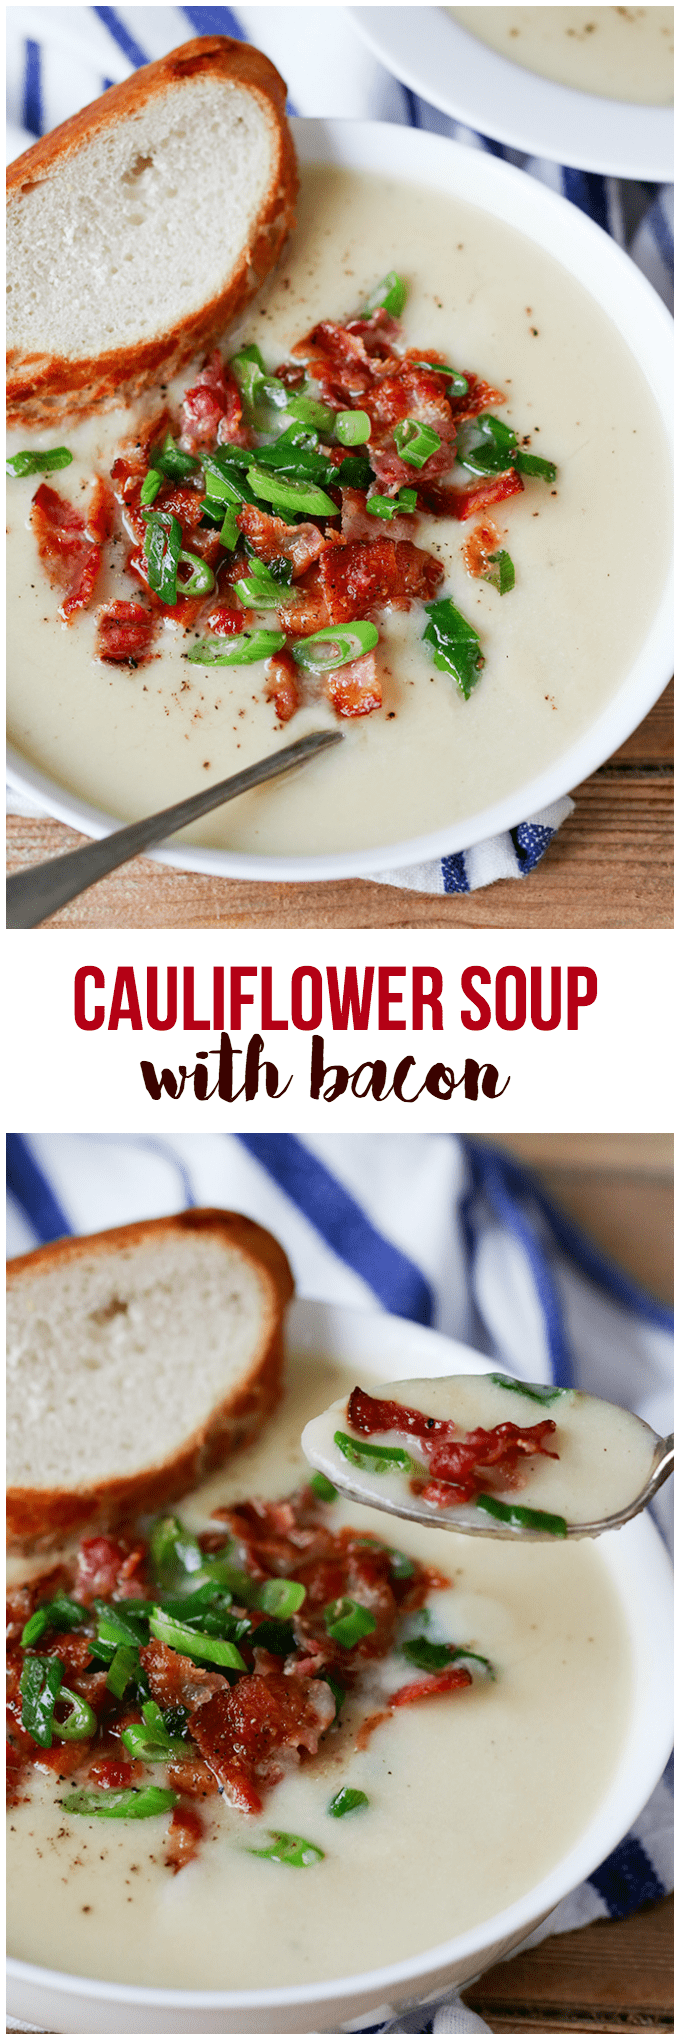 Cauliflower Soup with Bacon - so creamy and luscious, it almost feels indulgent! This comfort food recipe will become an instant favorite.